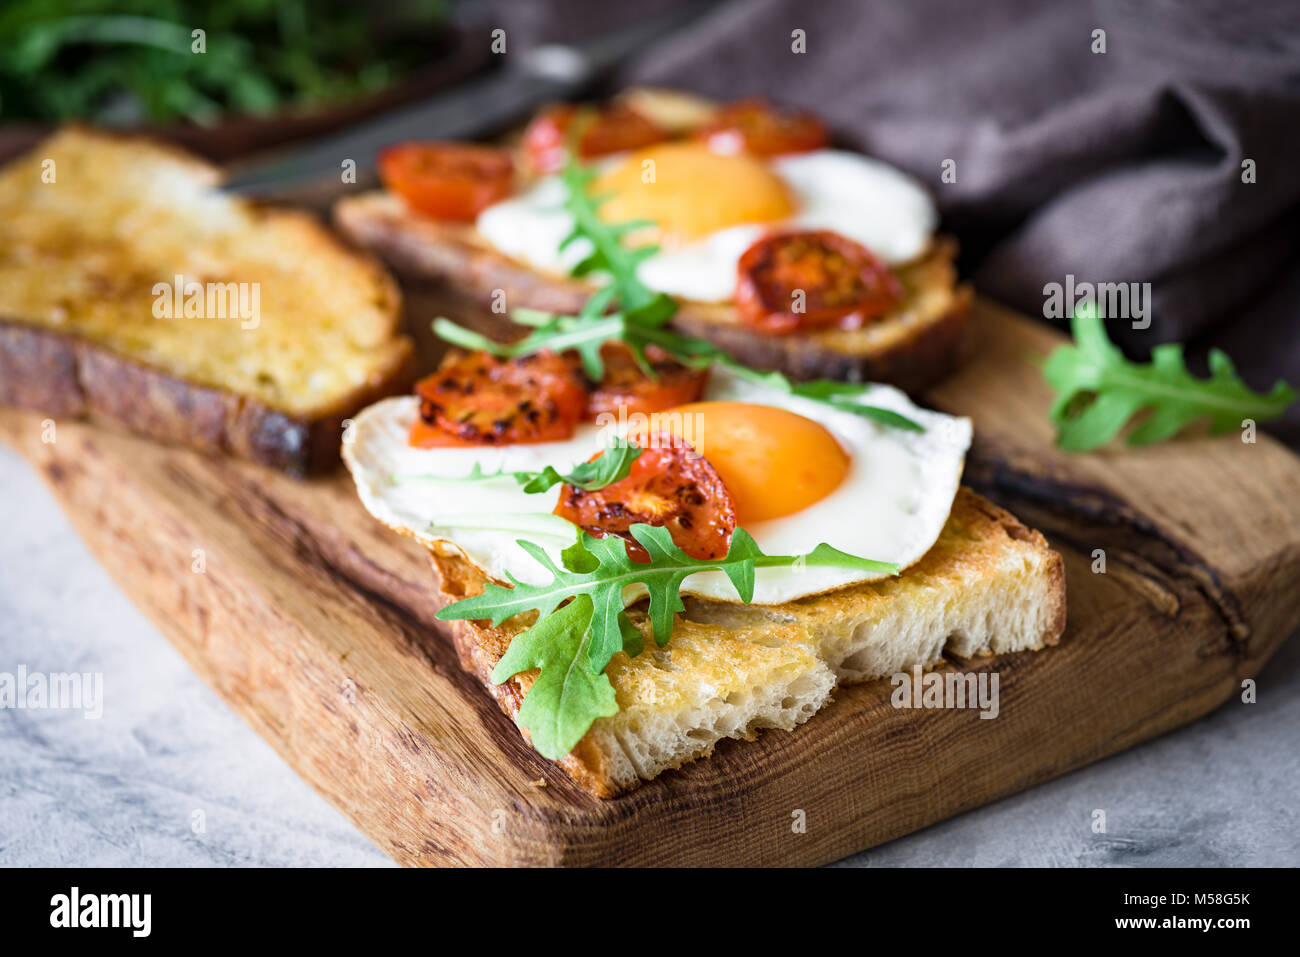 Healthy breakfast toast with egg, roasted tomato and arugula on rustic wooden cutting board. Closeup view - Stock Image